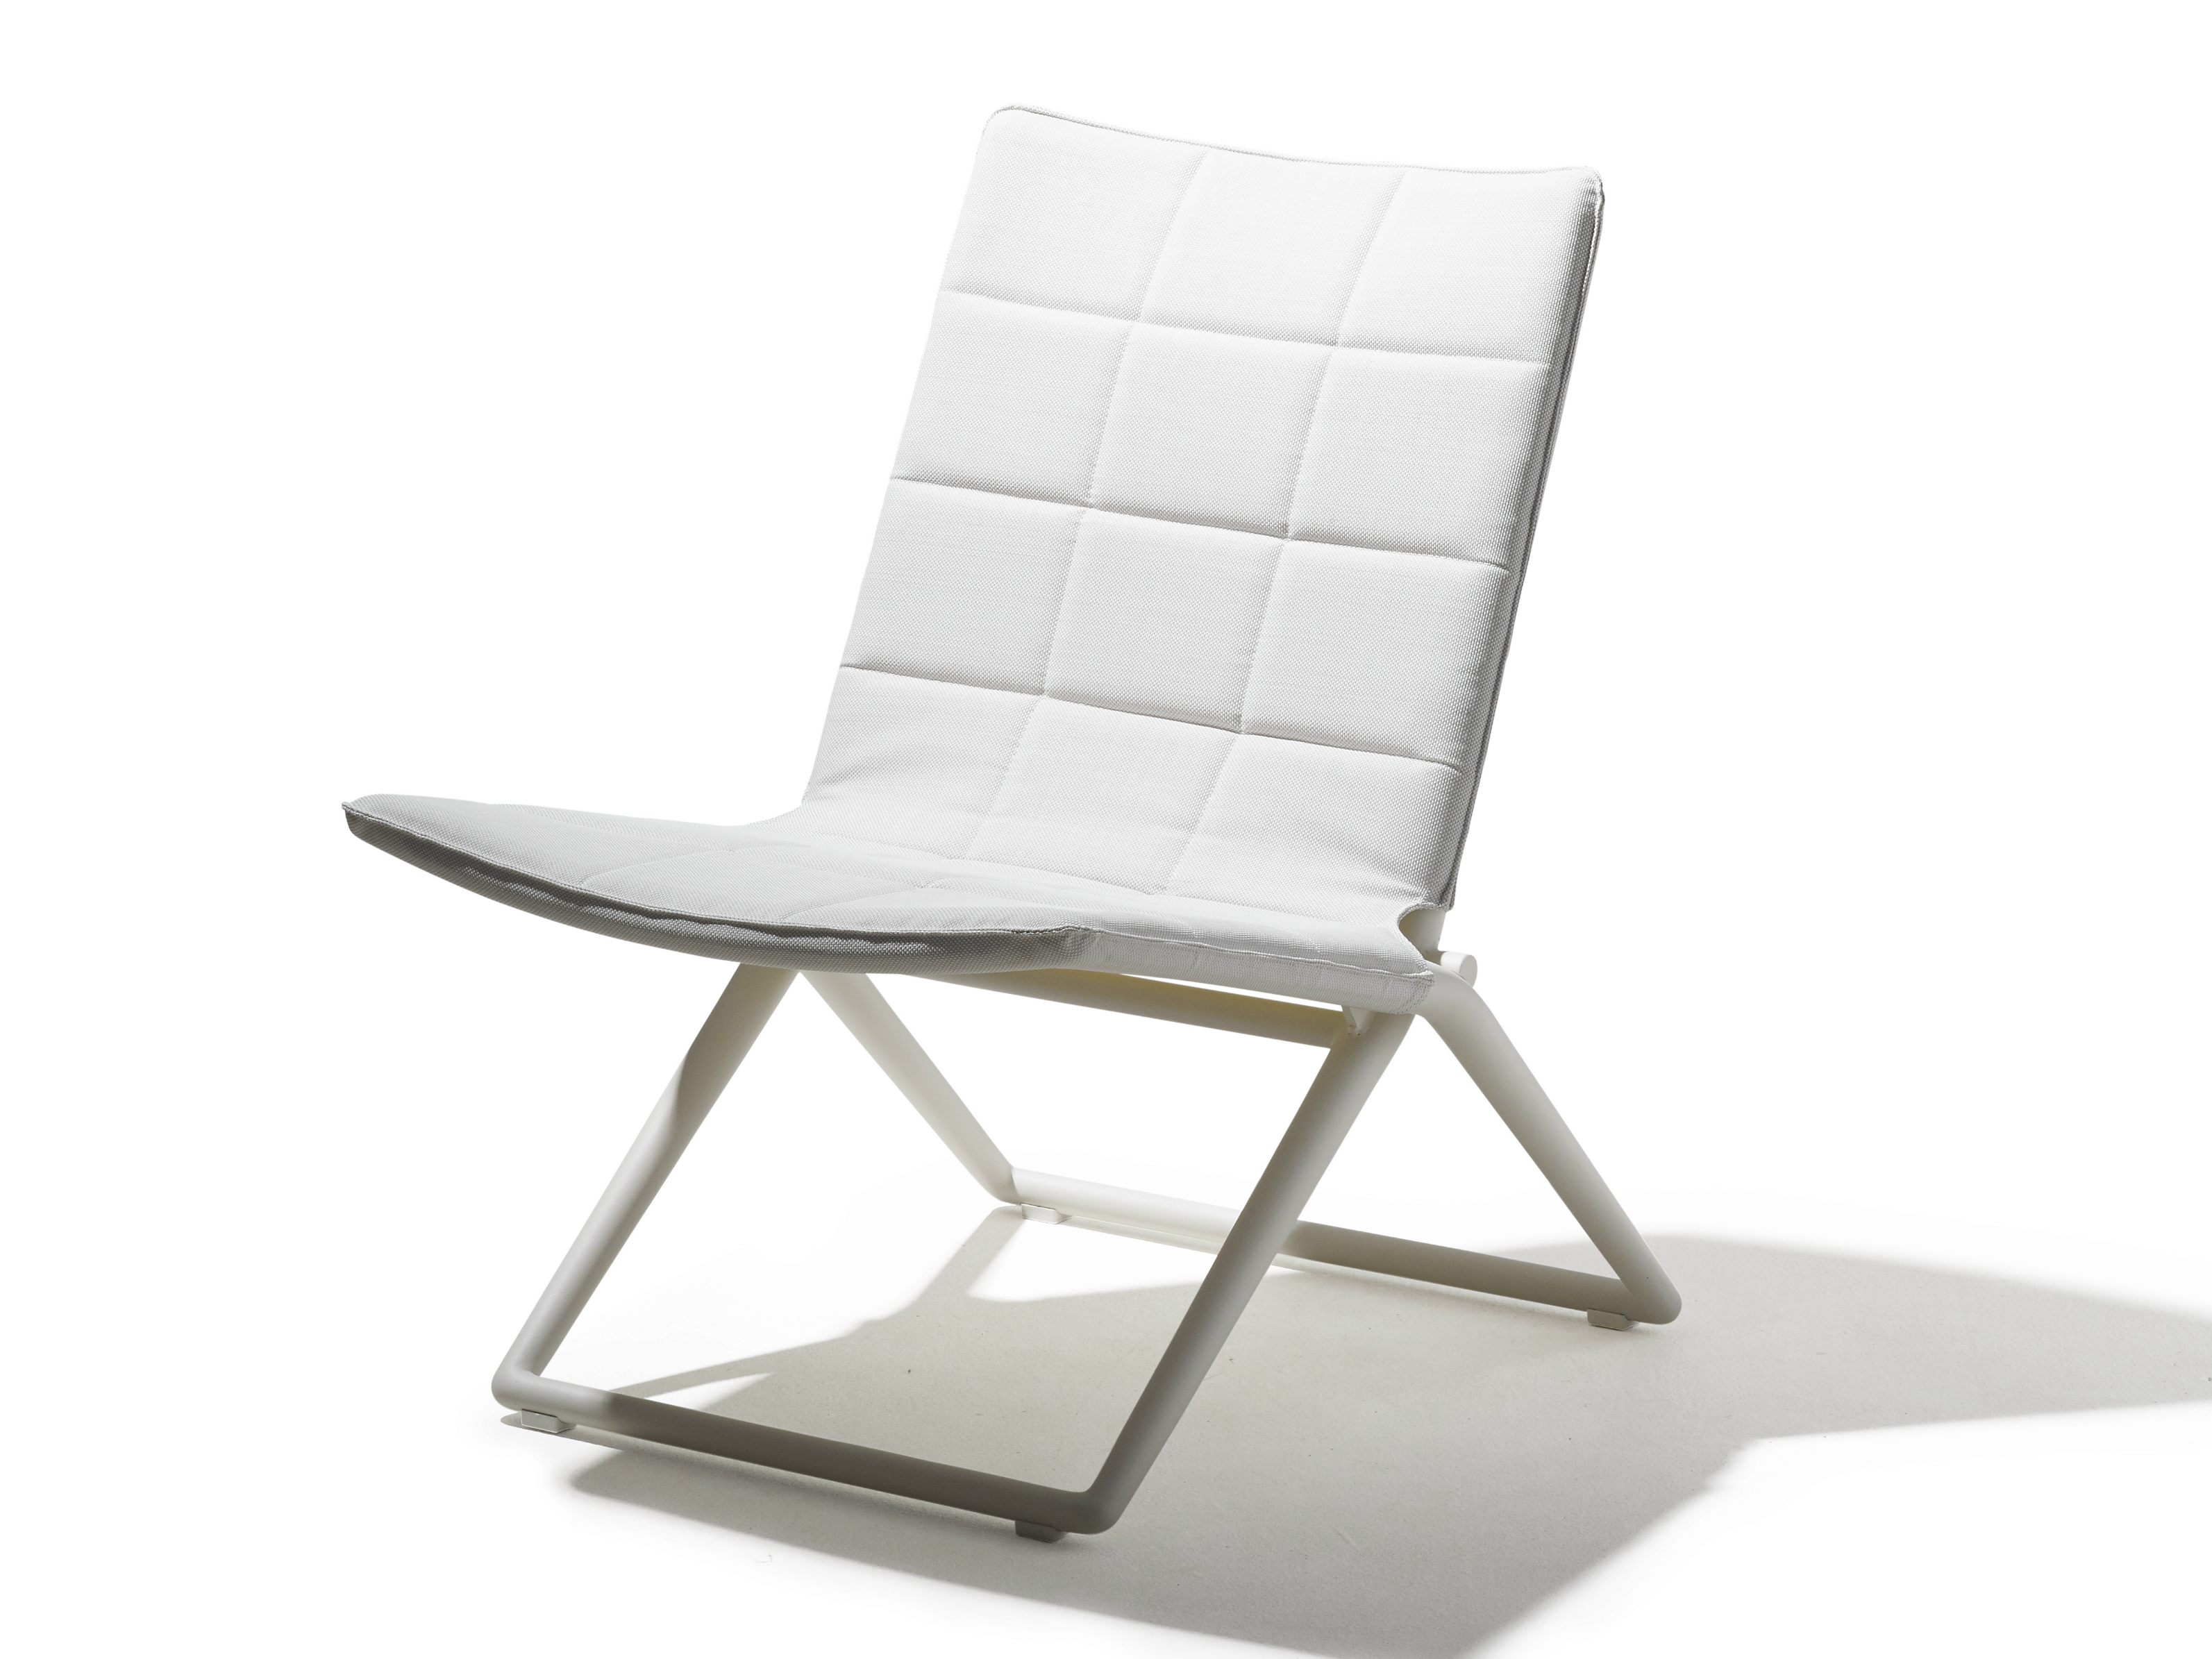 Traveller Club & Beach Chair by Cane line Couture Outdoor